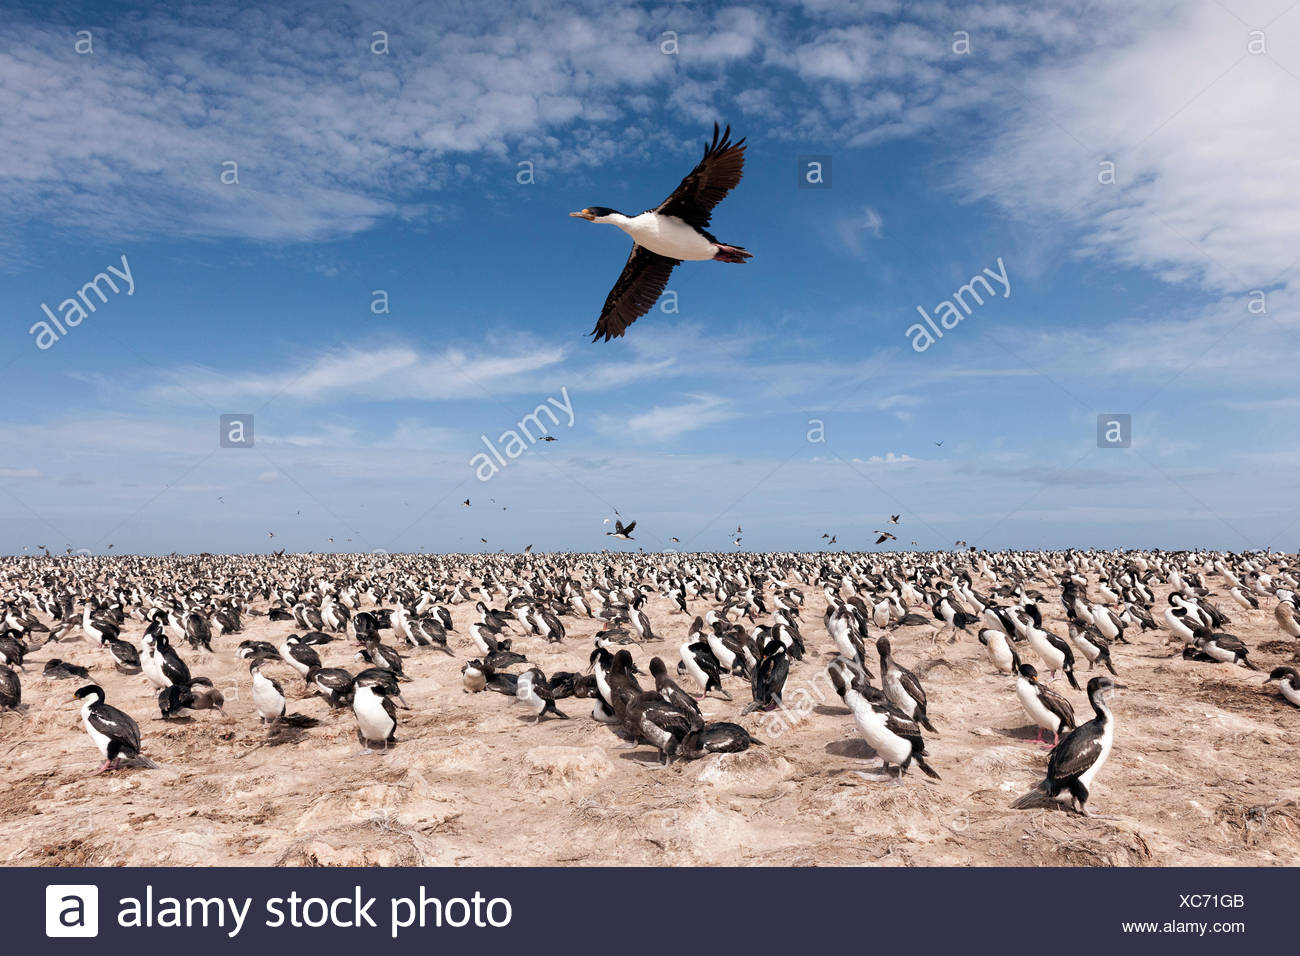 Imperial shag (Phalacrocorax albiventer) flying over the colony, Bleaker Island, Falkland Islands - Stock Image